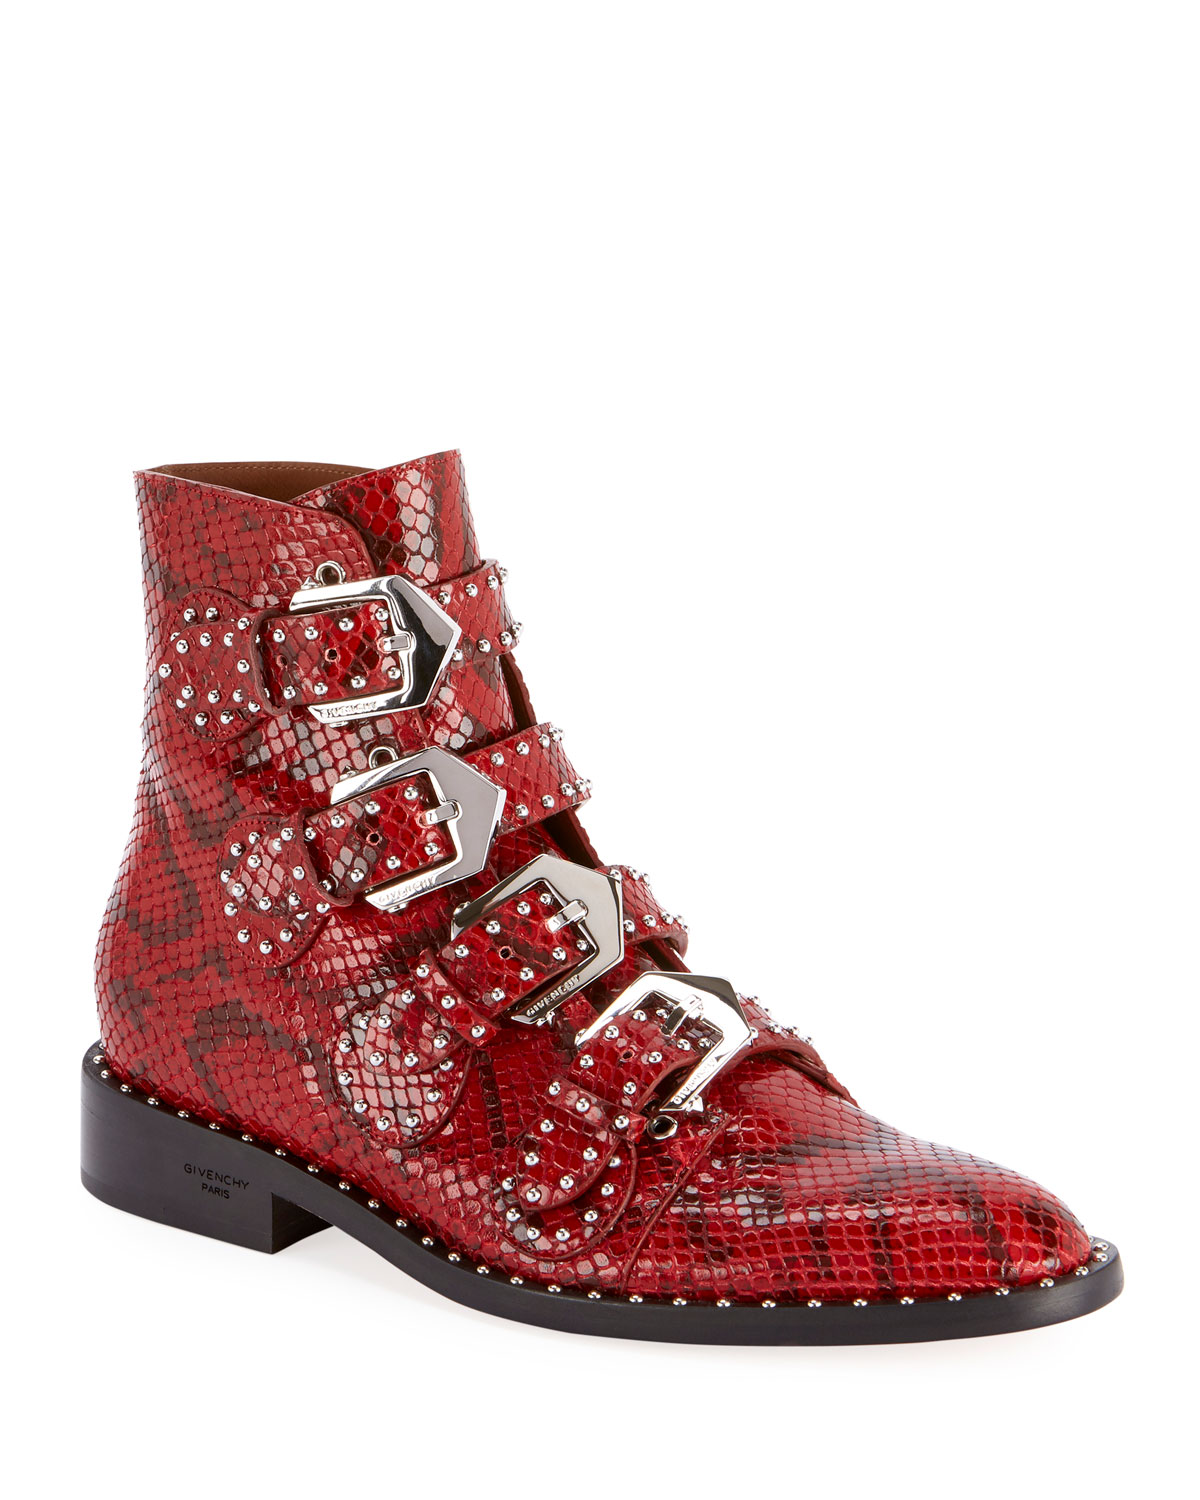 Givenchy Boots Elegant Studded Python-Print Booties